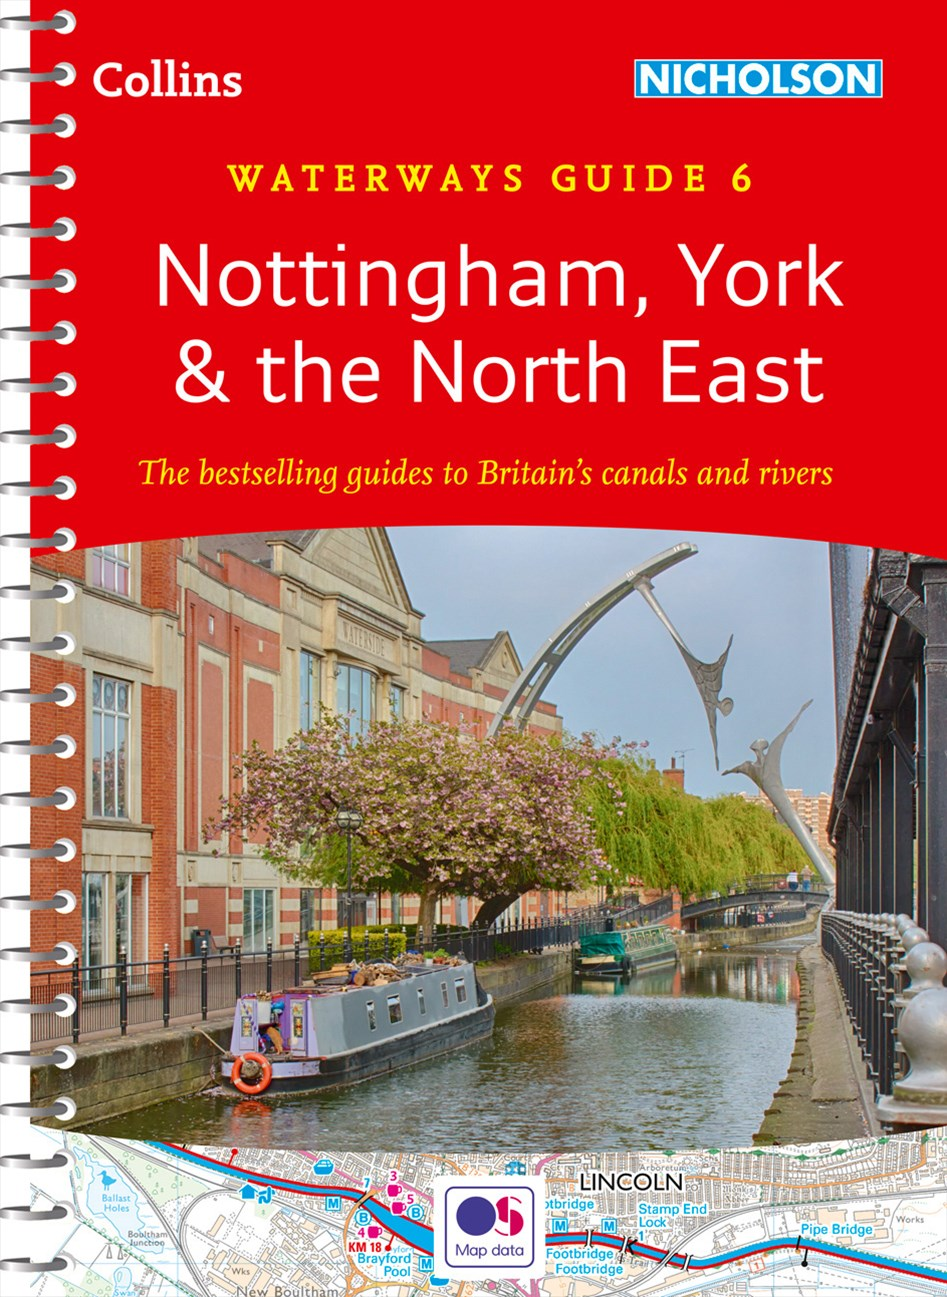 Collins Nicholson Waterways Guides - Nottingham, York & The North East No. 6 [New Edition]